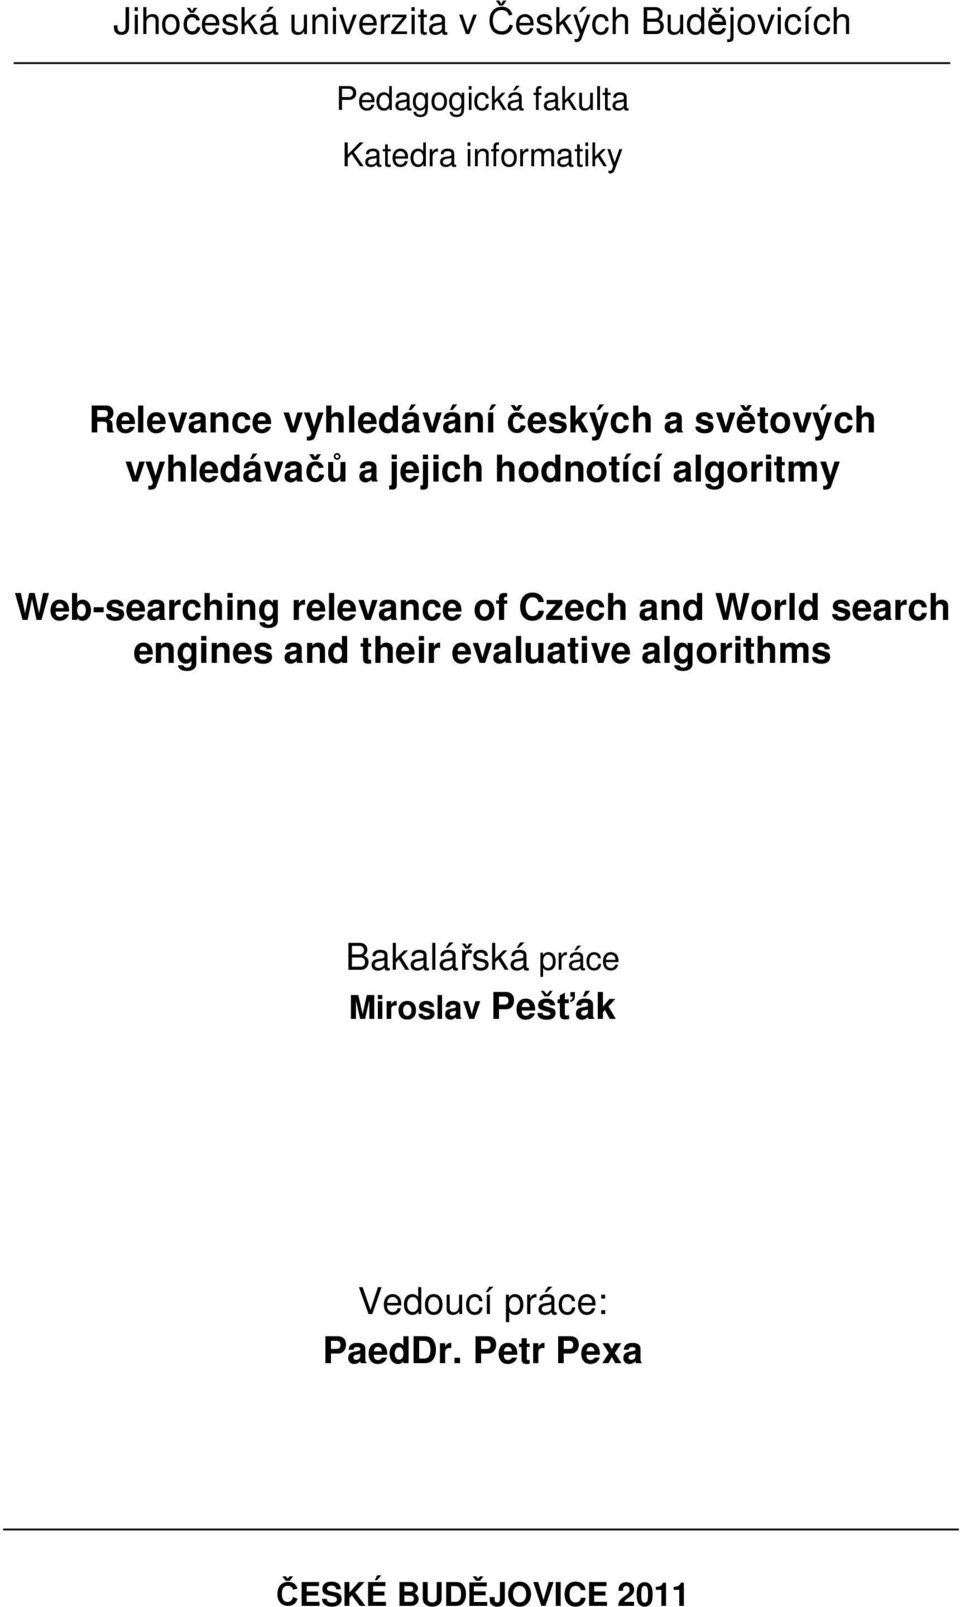 Web-searching relevance of Czech and World search engines and their evaluative